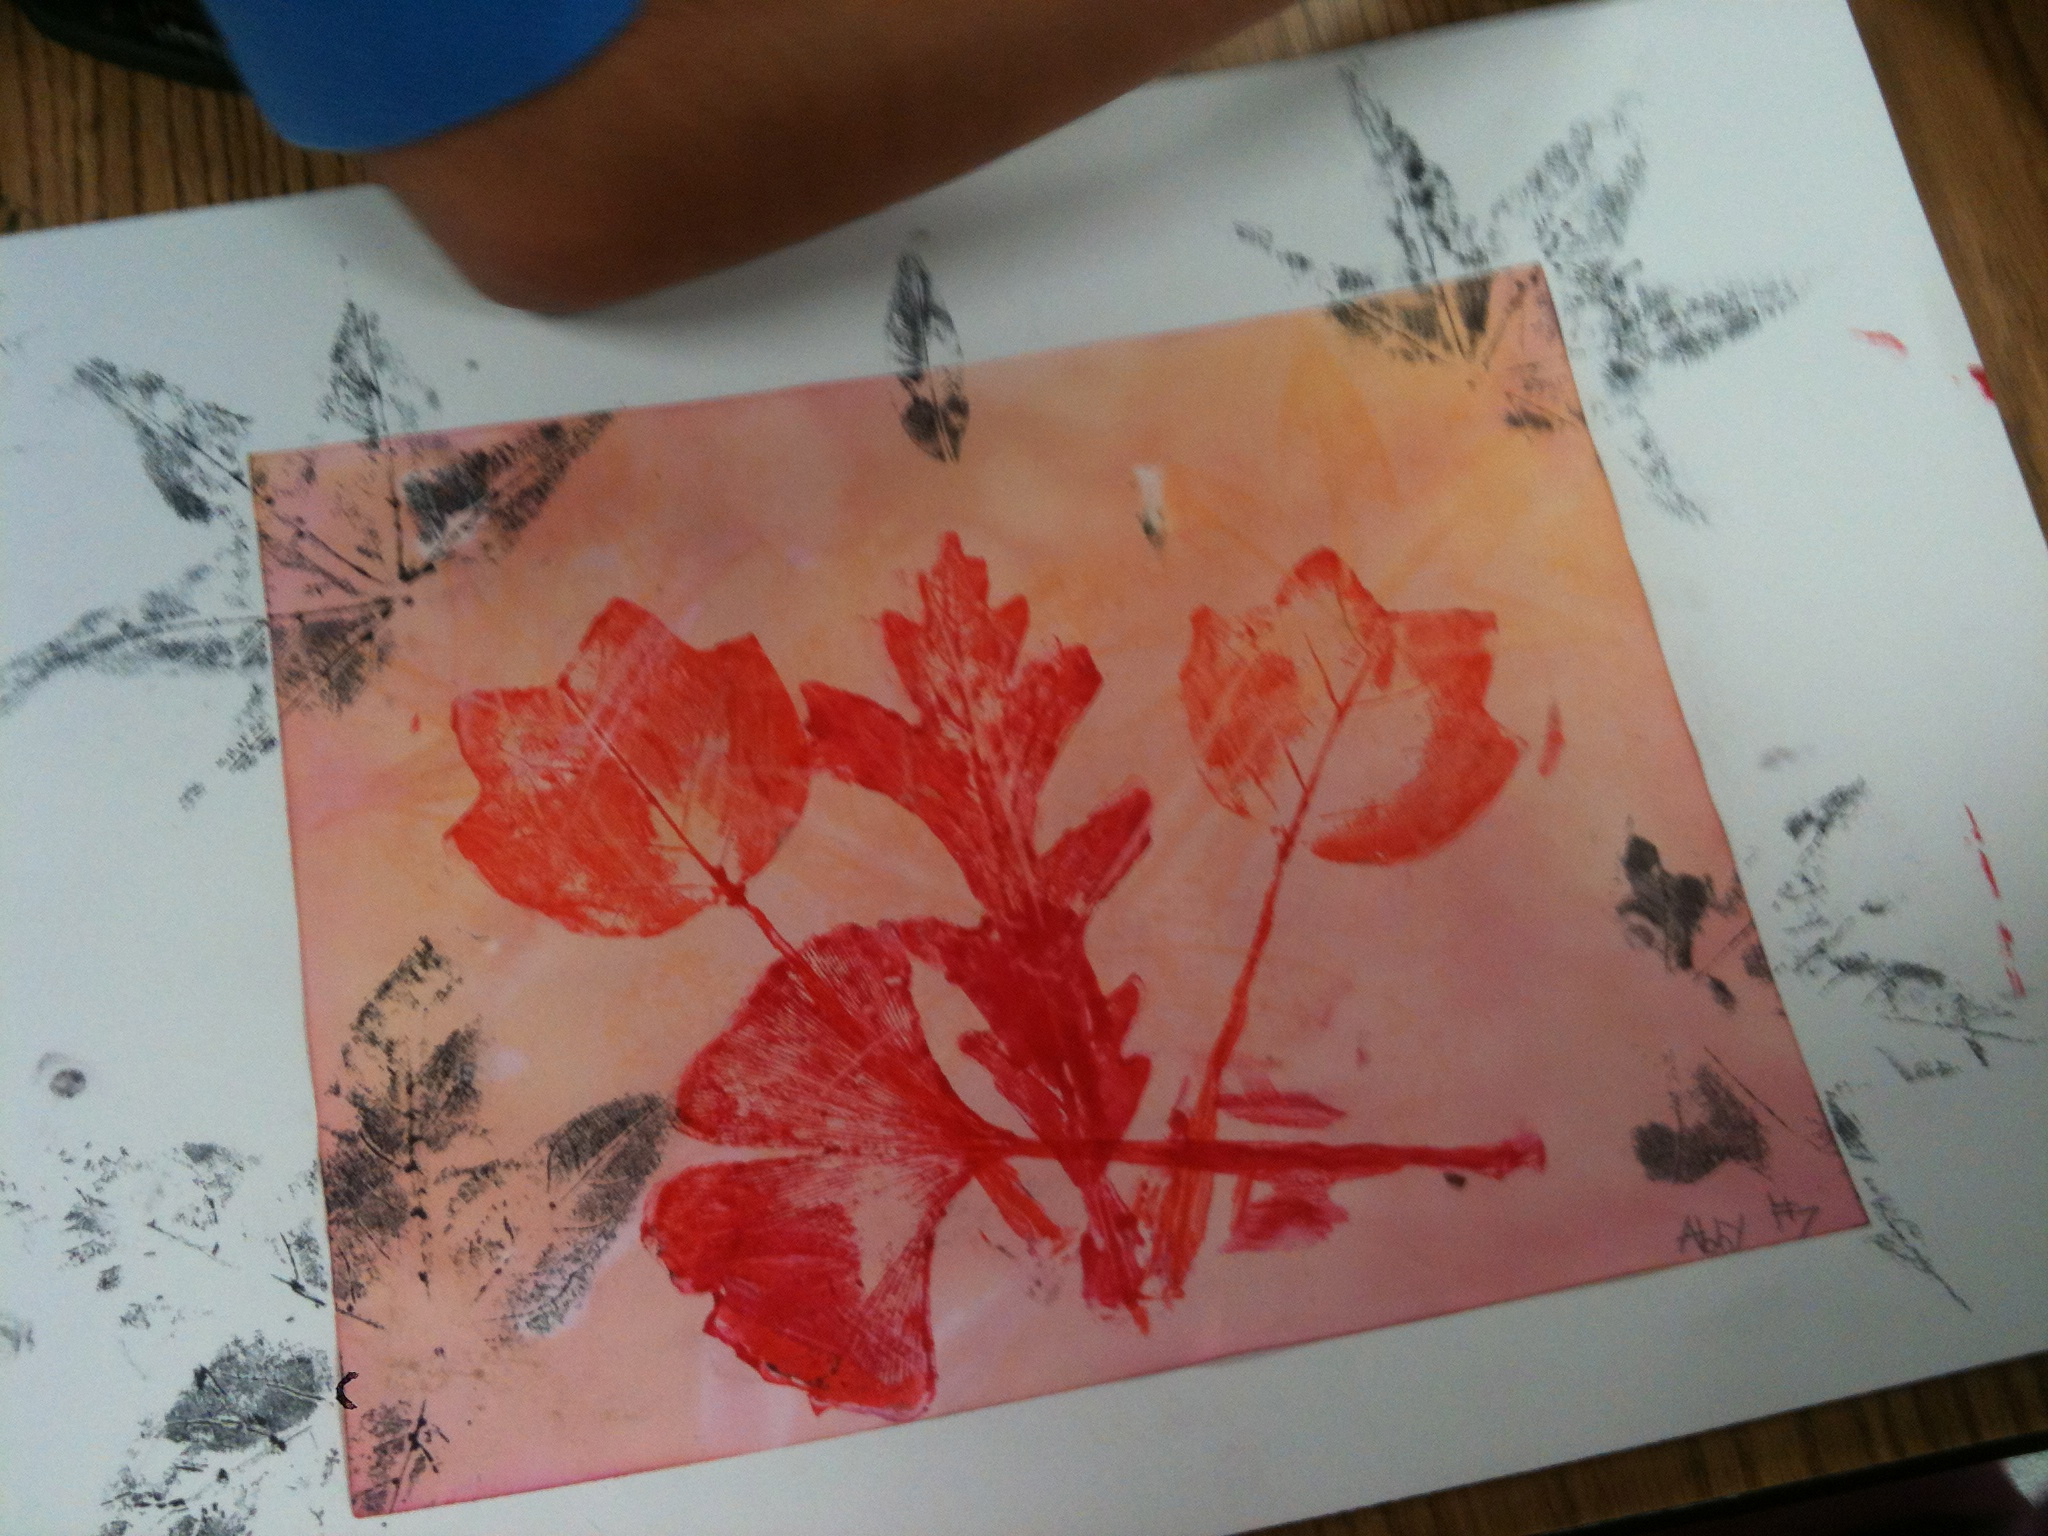 Red/orange leaf prints were made with rubber leaf stamps